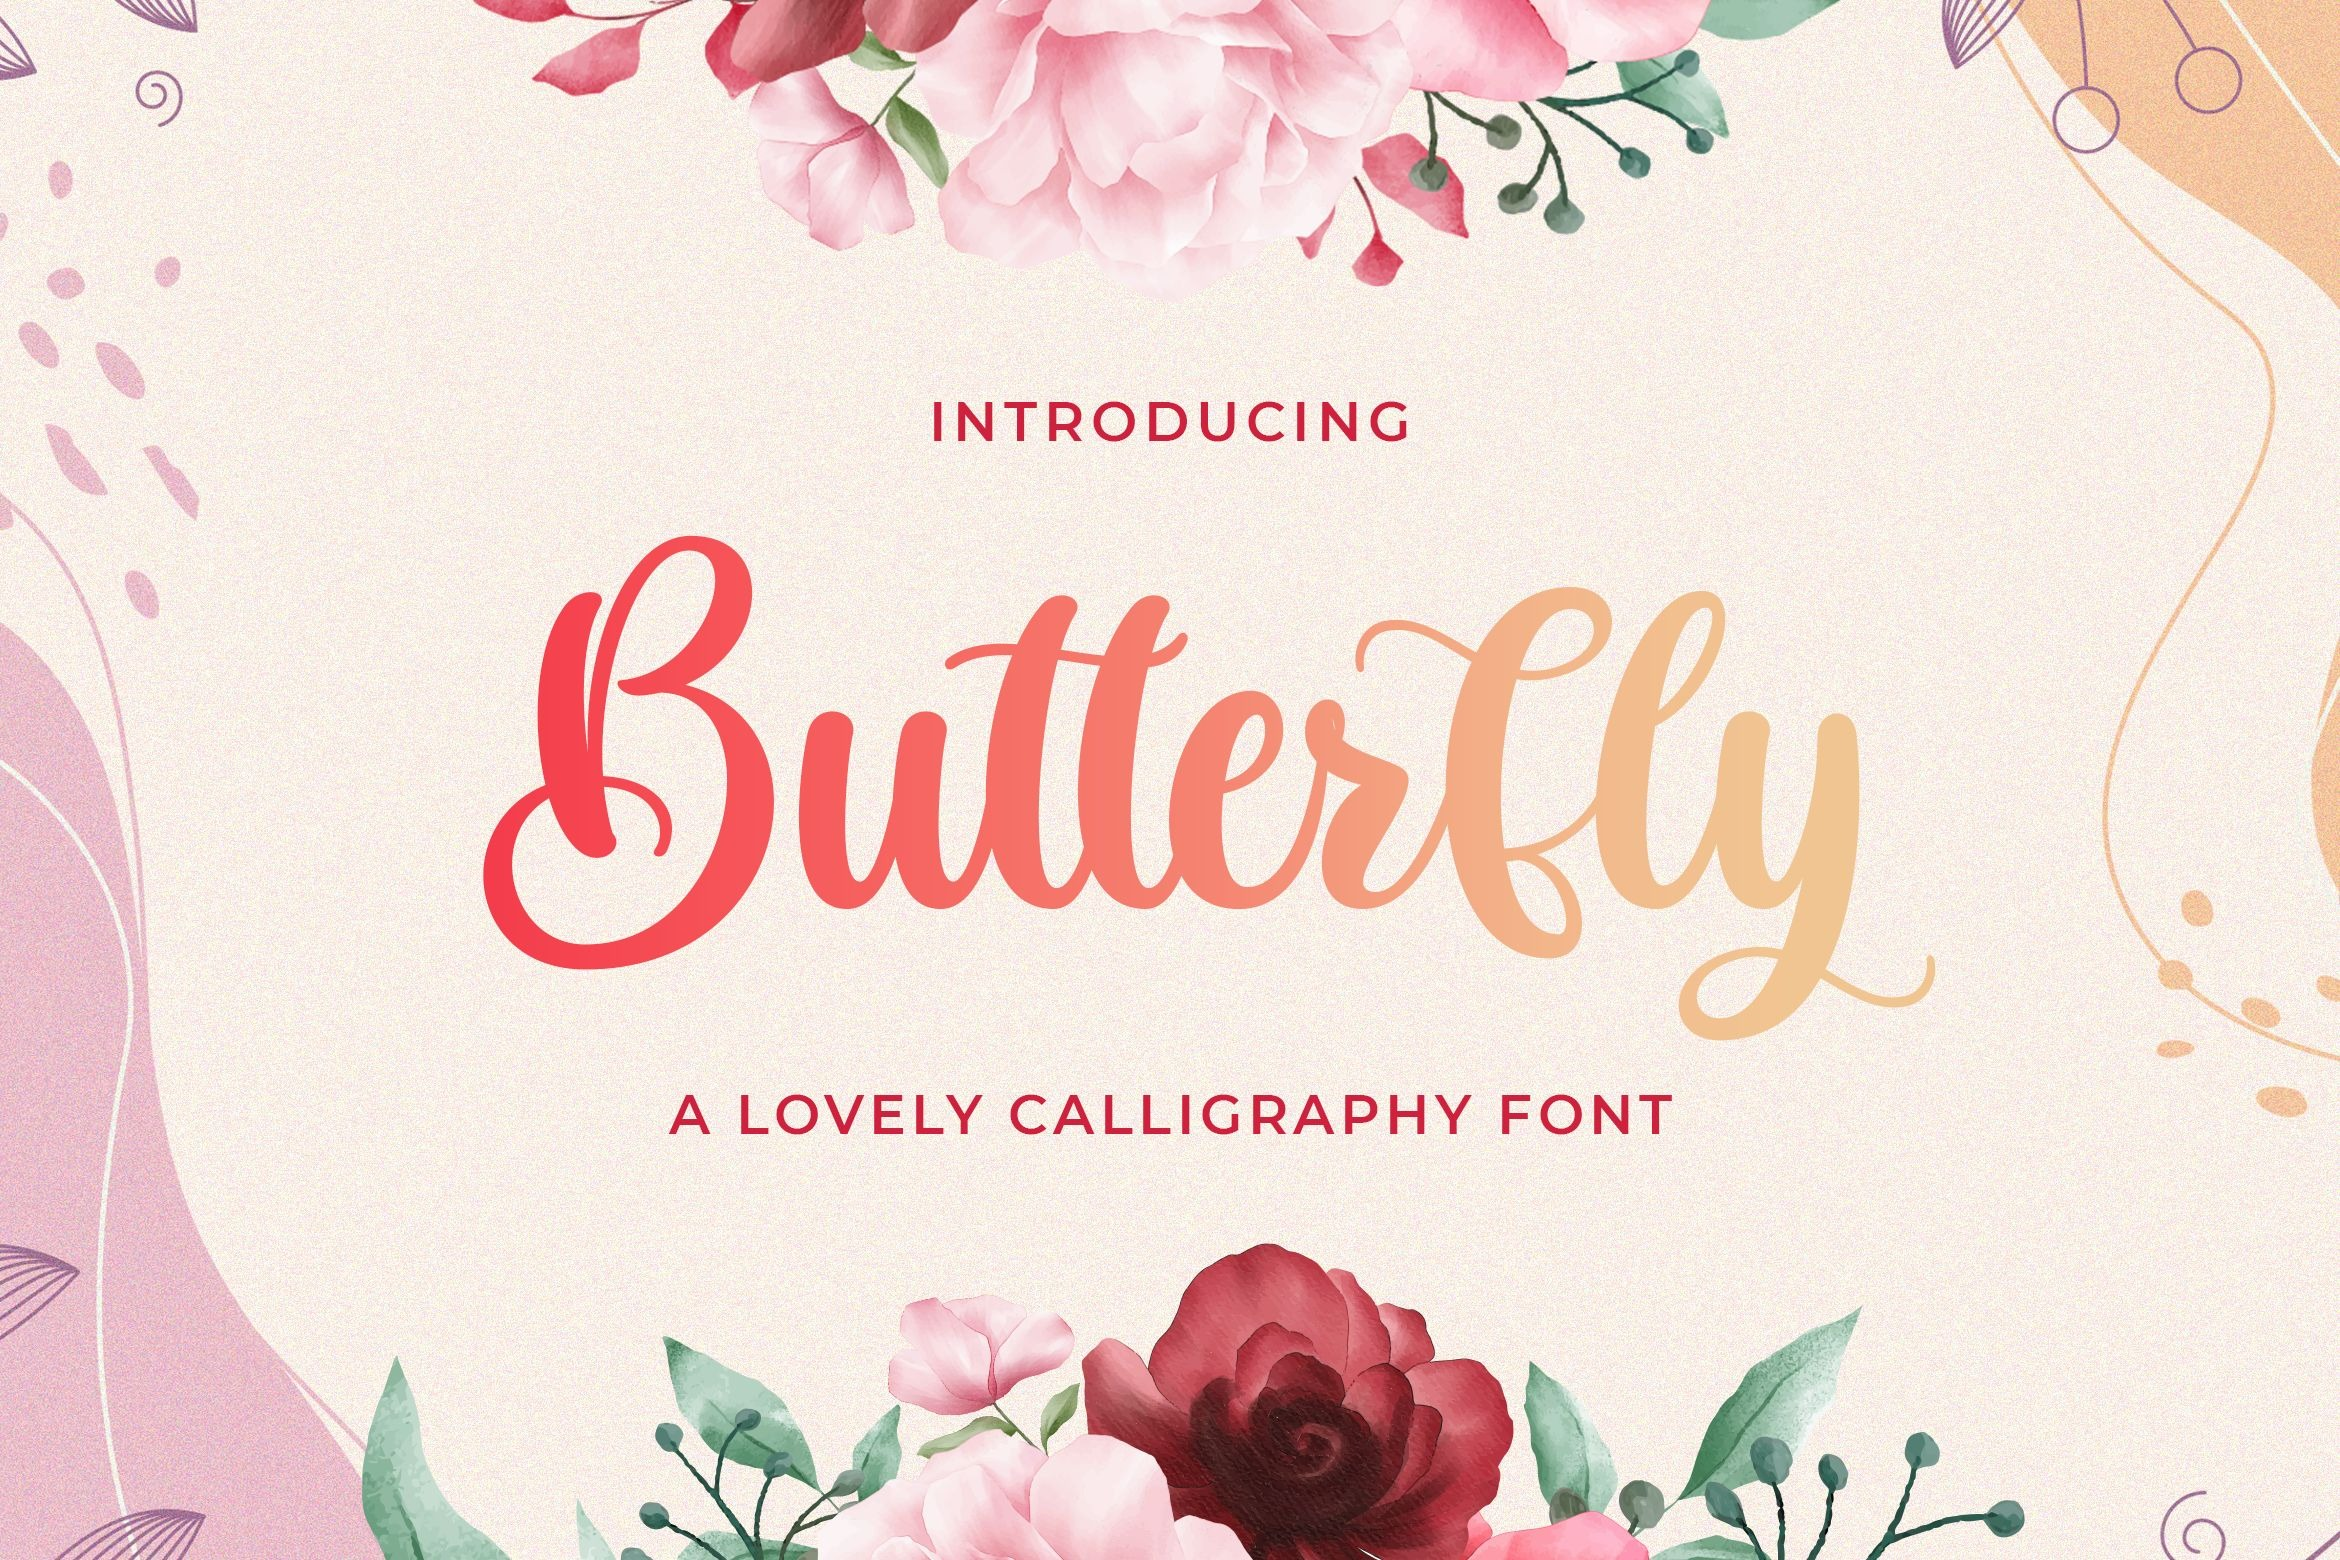 Butterfly Calligraphy Font01